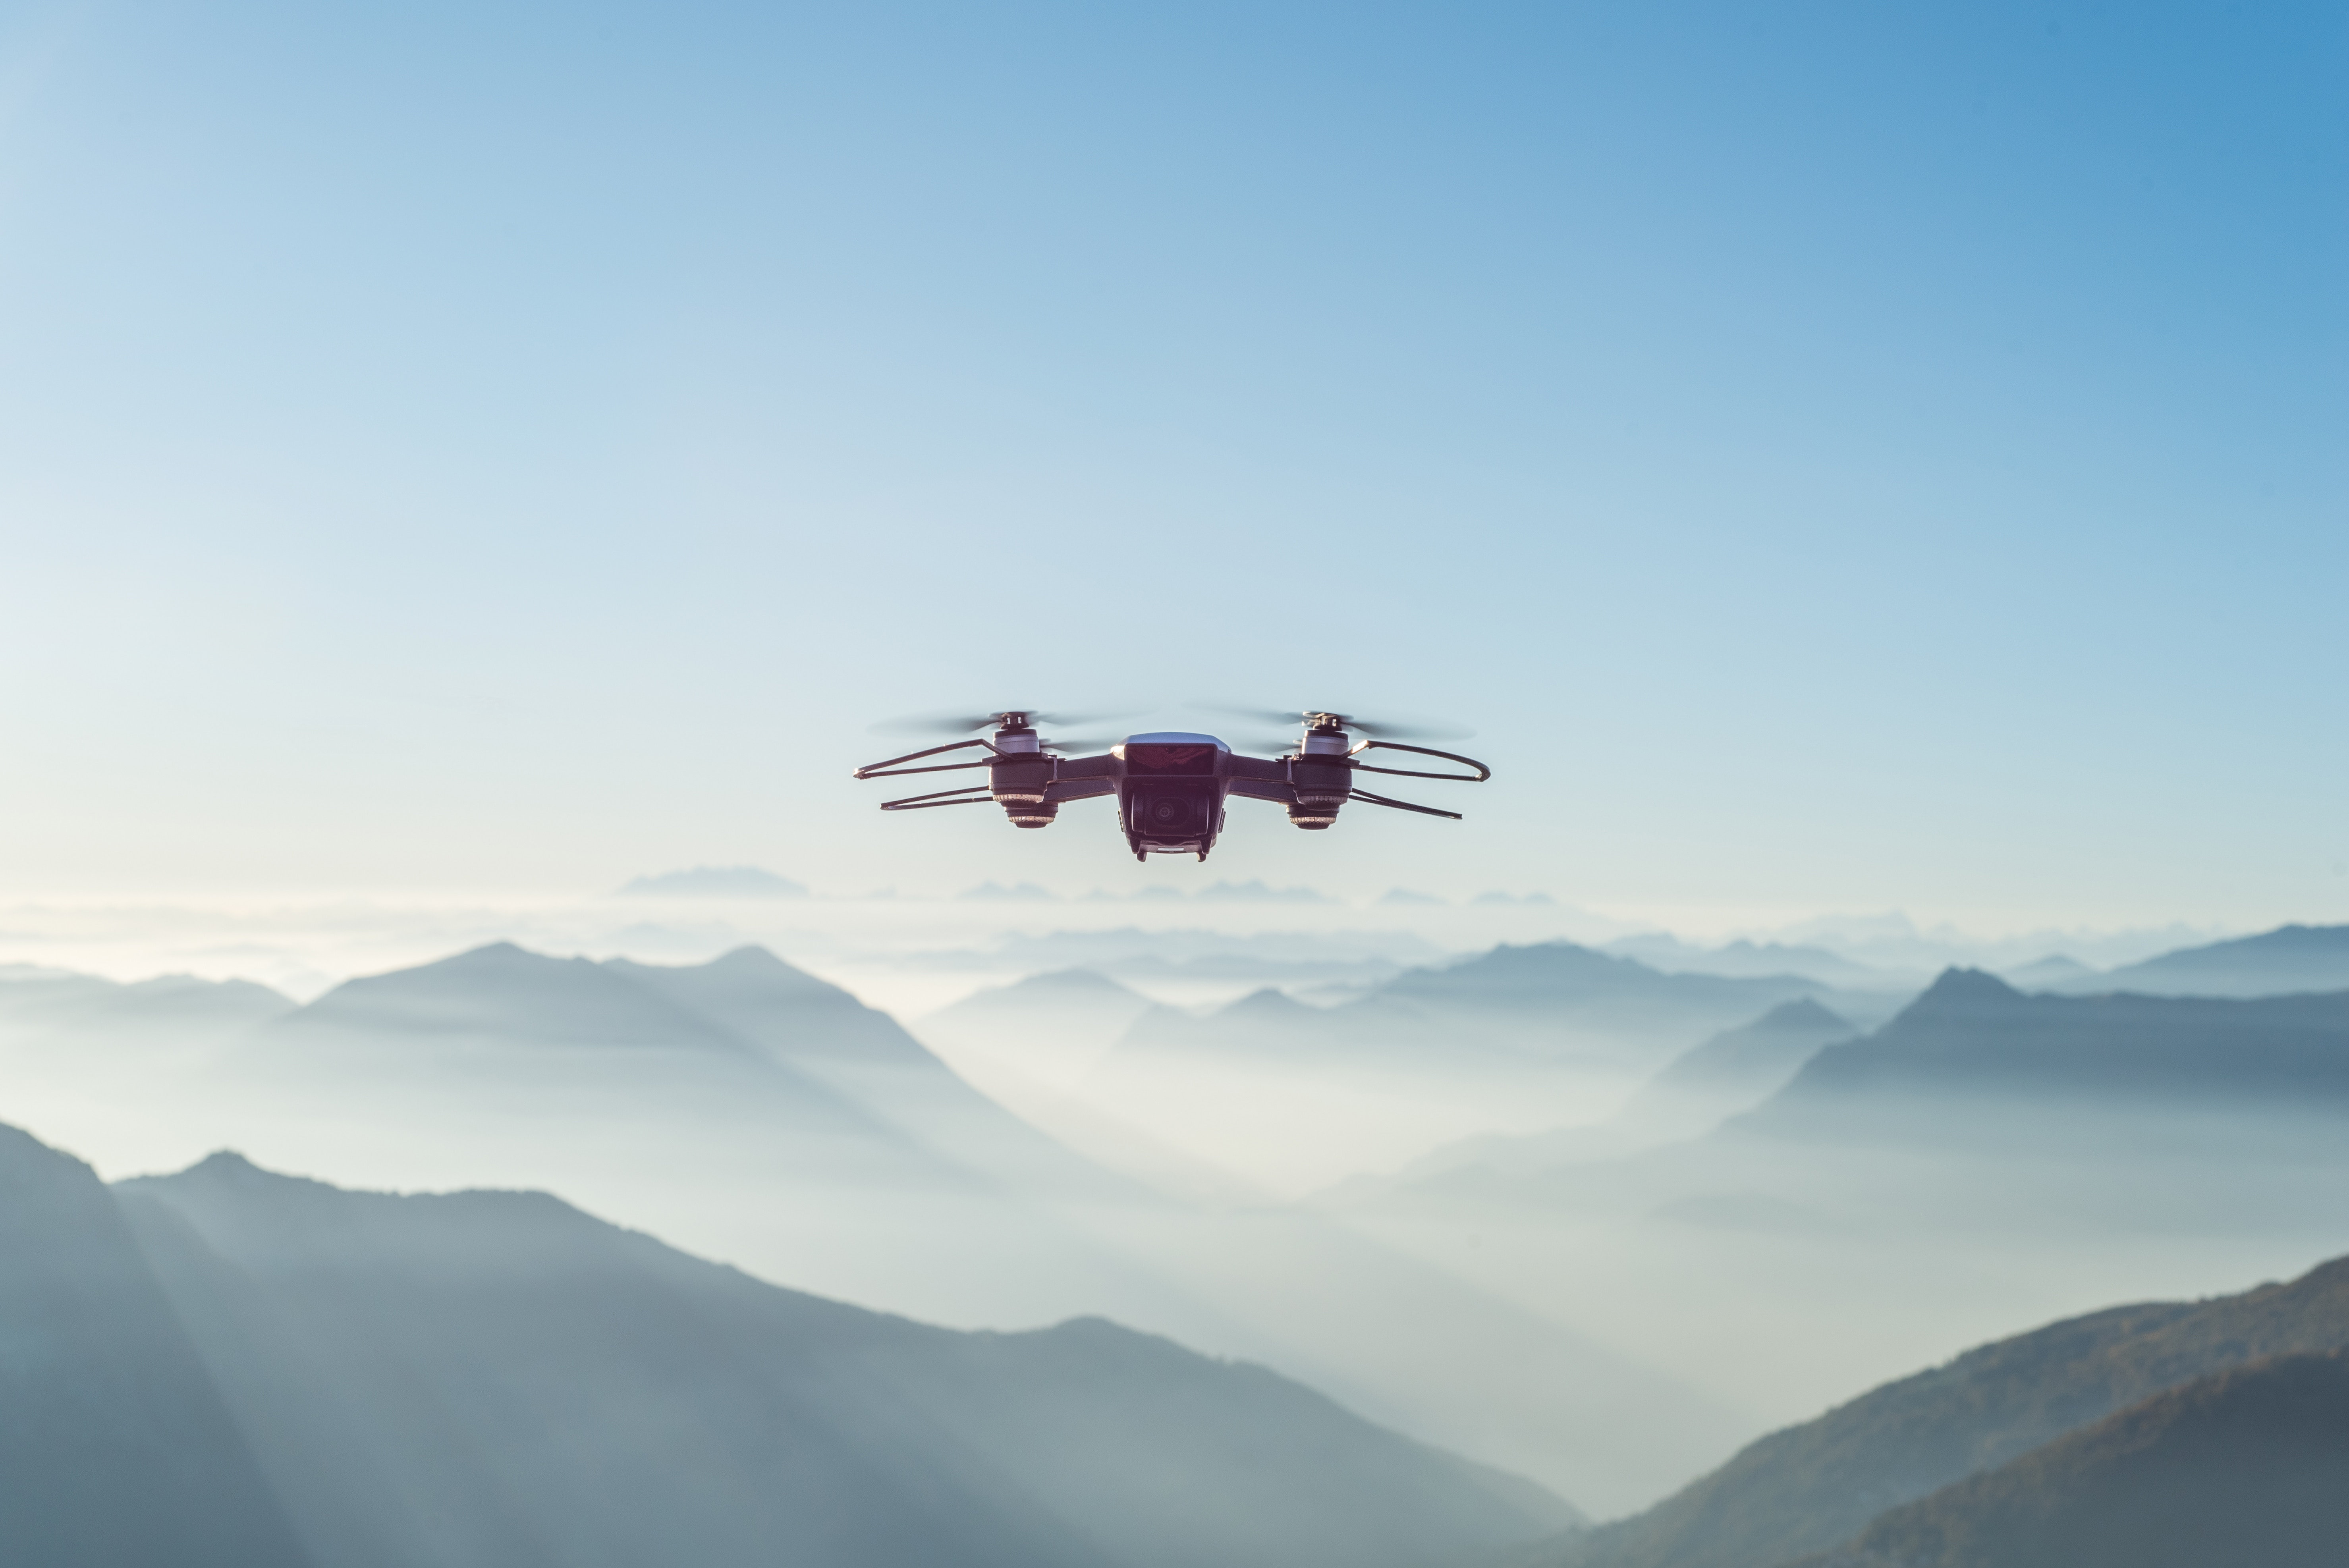 four propeller drone flying above the clouds in a mountain scape